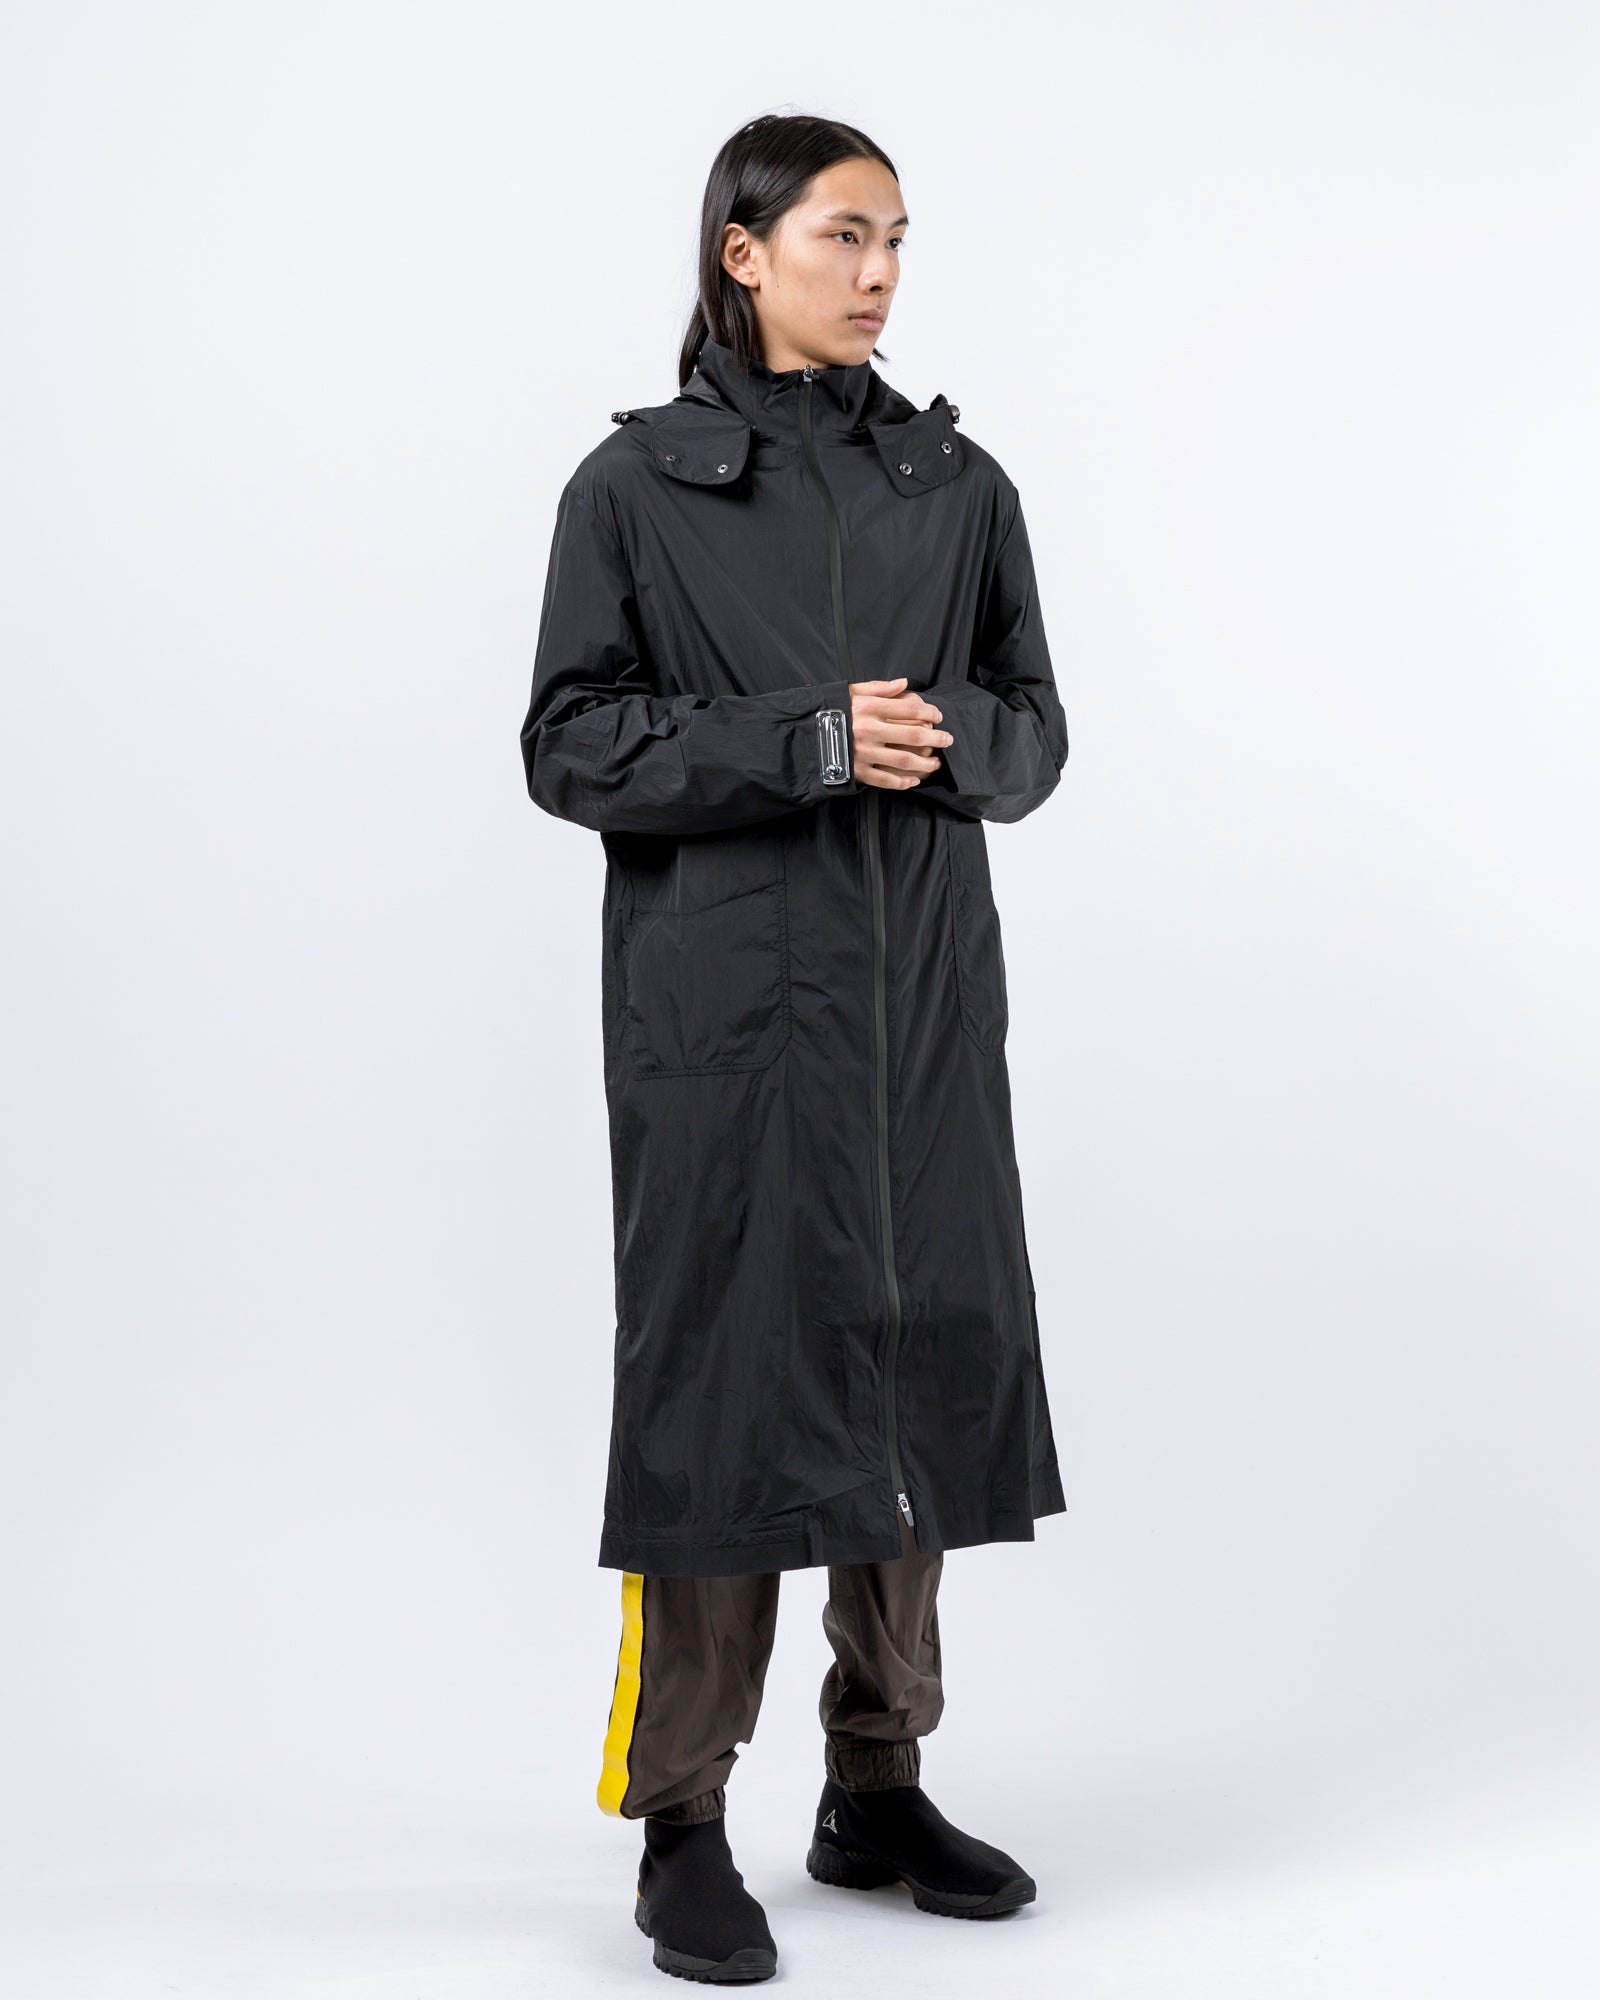 Long Coat in Black | Oakley by Samuel Ross